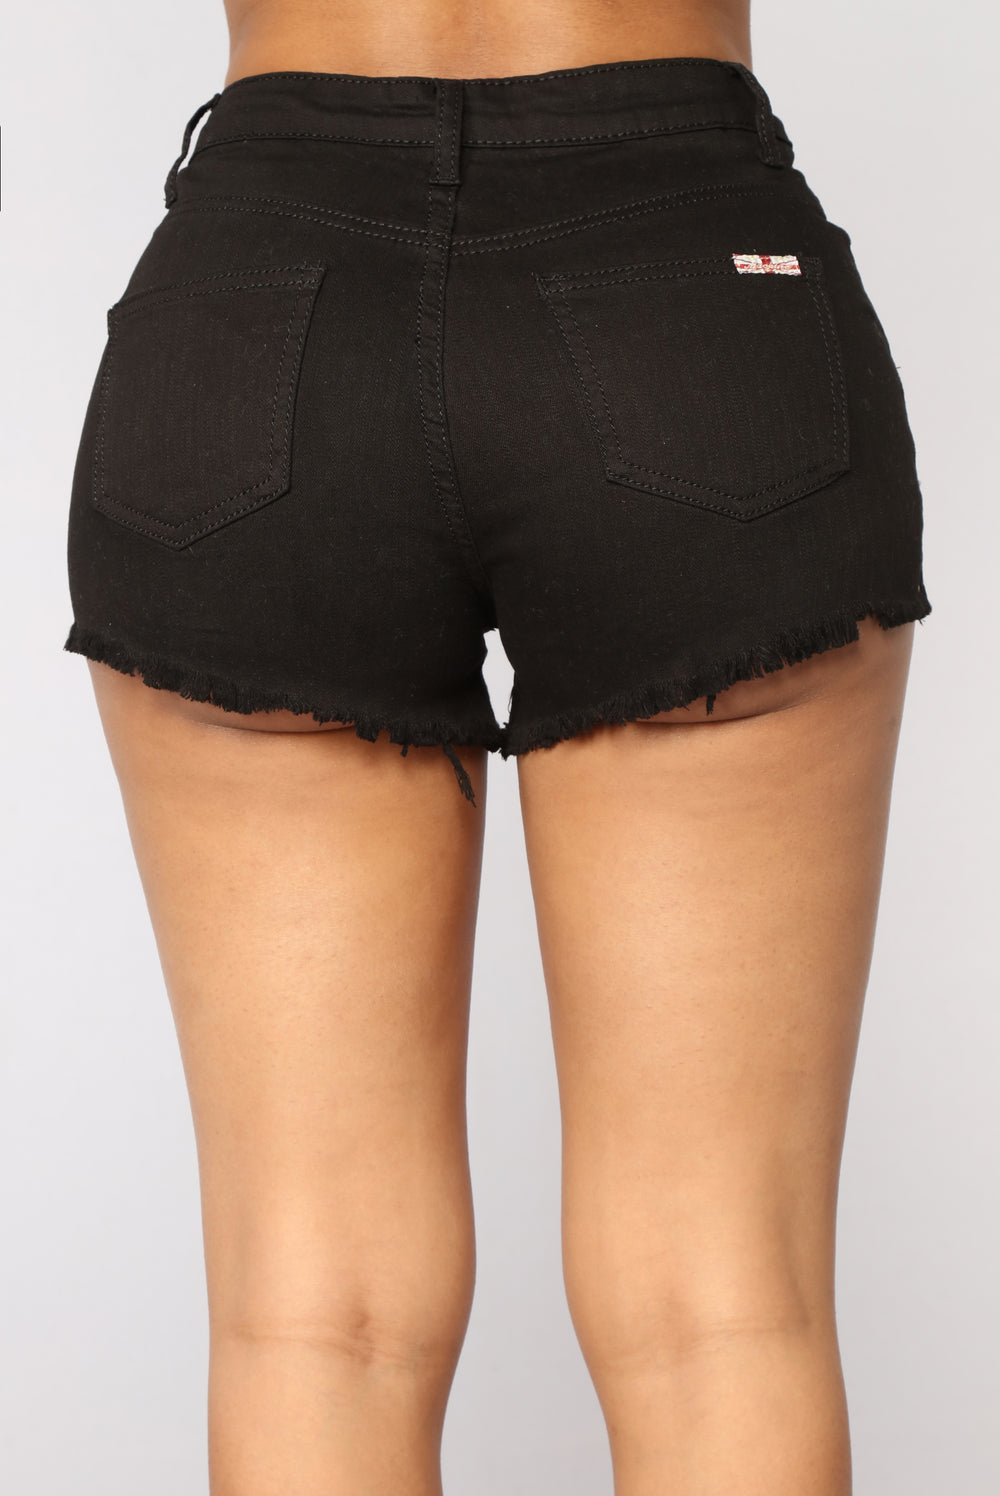 Pearls With A Twist Denim Shorts - Black